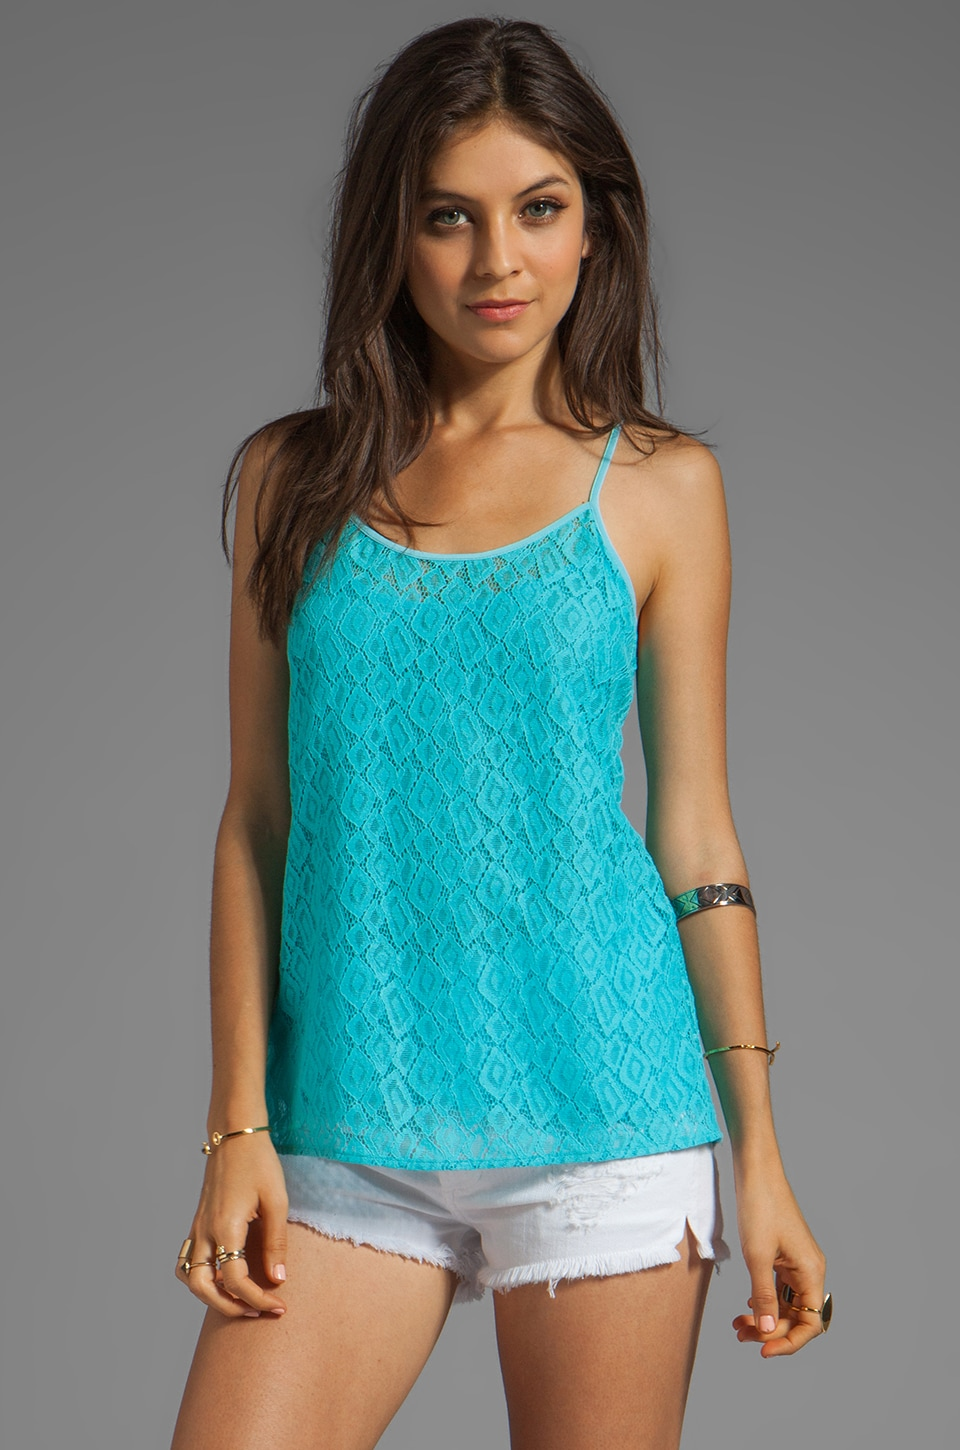 Nanette Lepore Festival Top in Pond